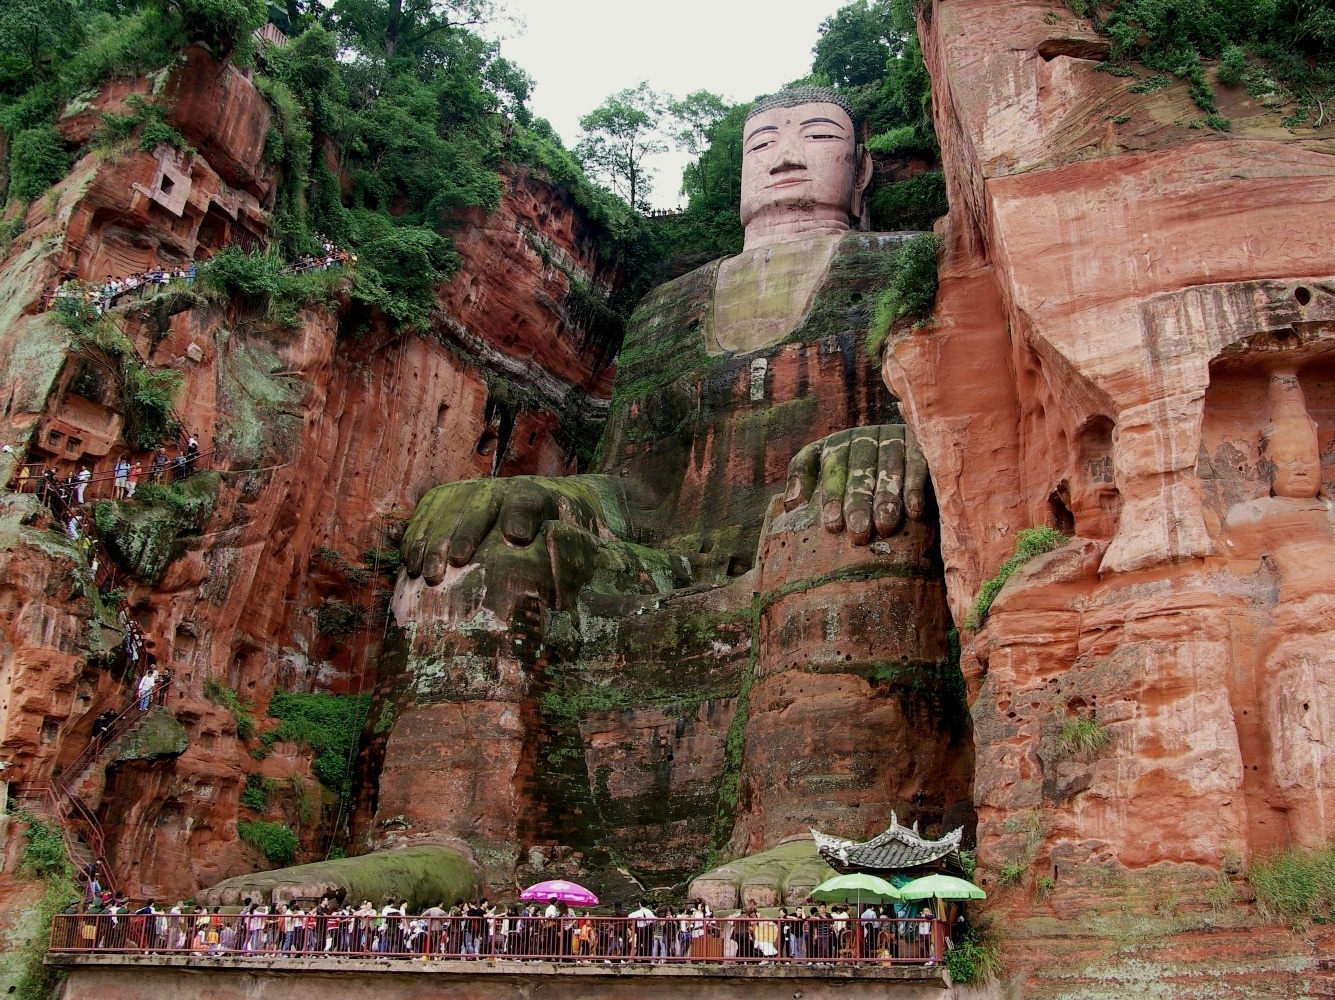 Marele Buddha, Leshan, China